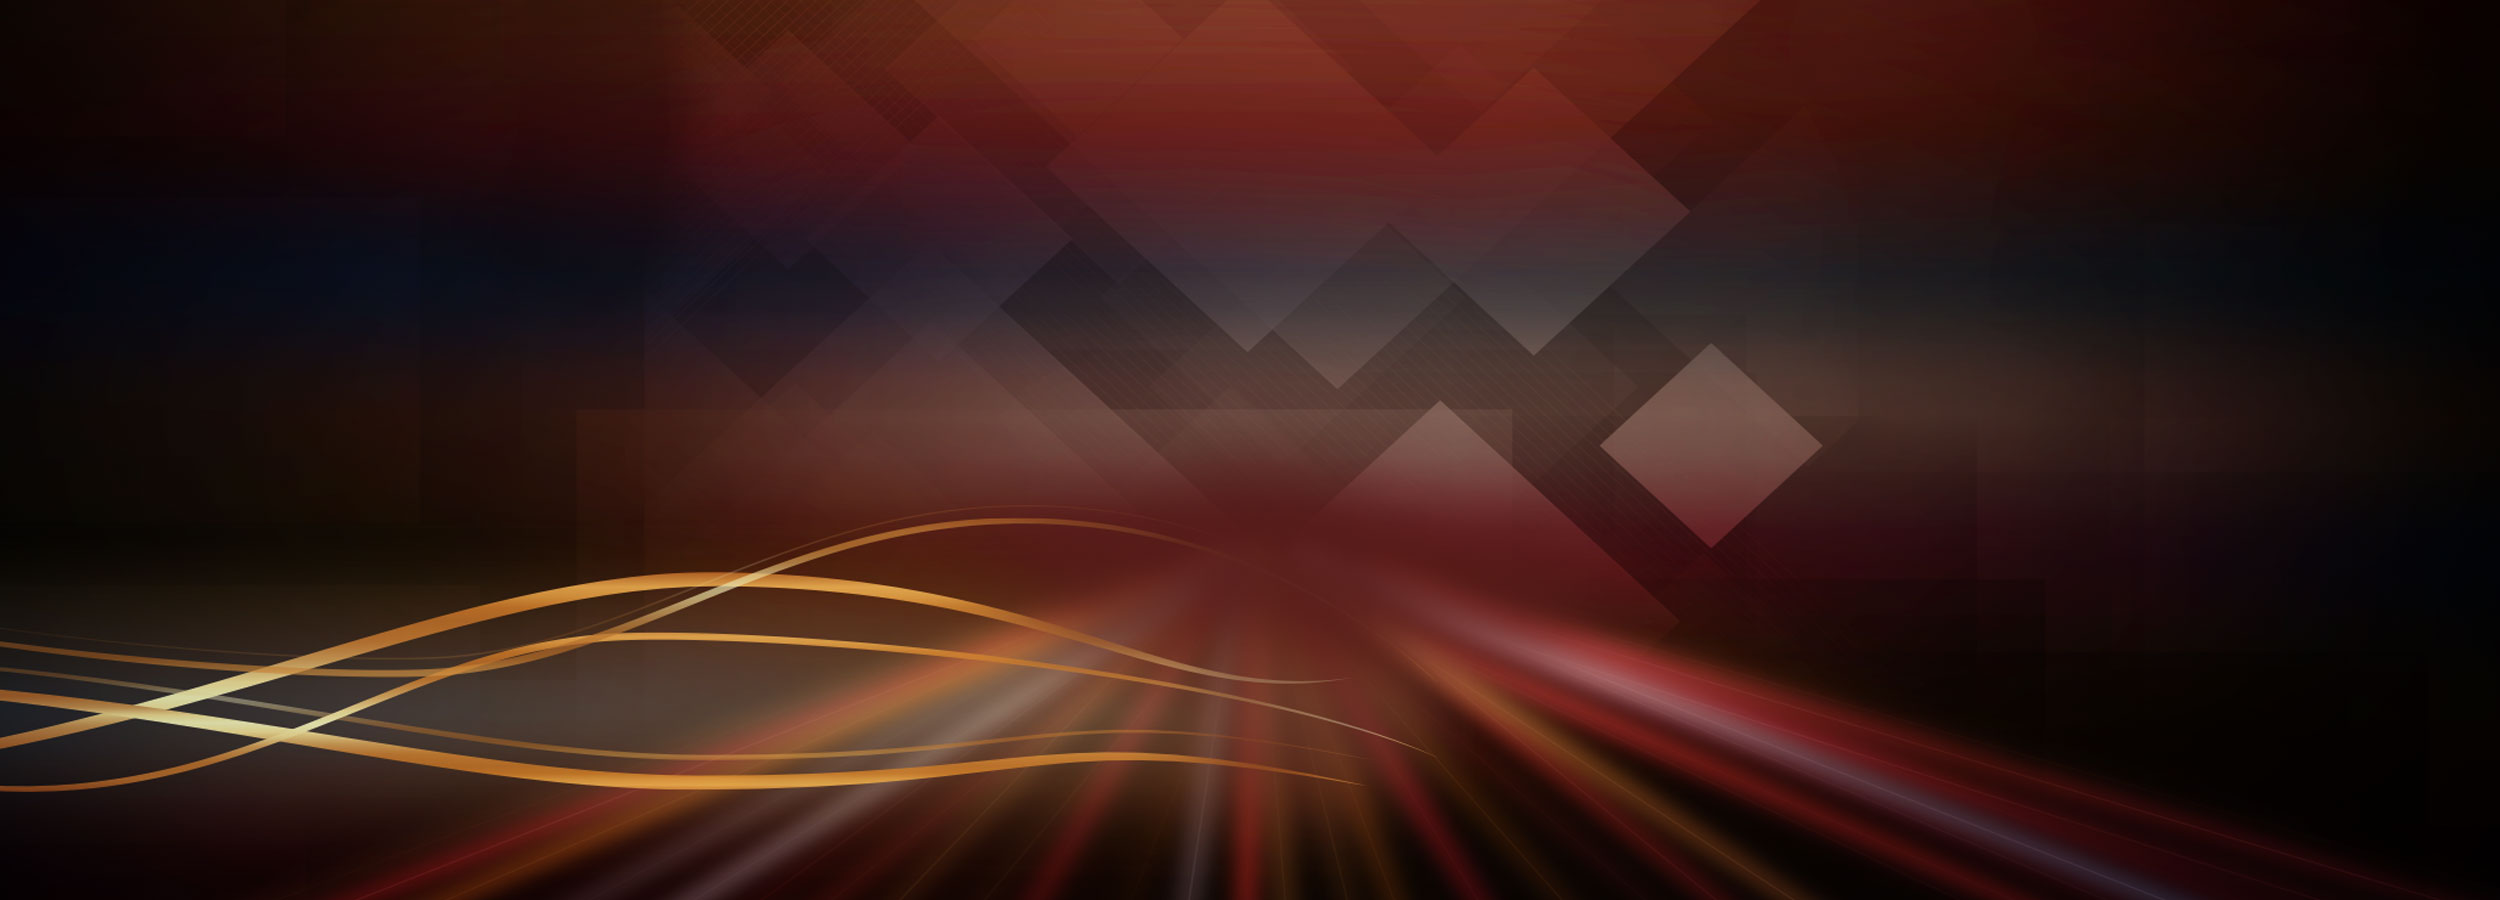 background_DIR-842